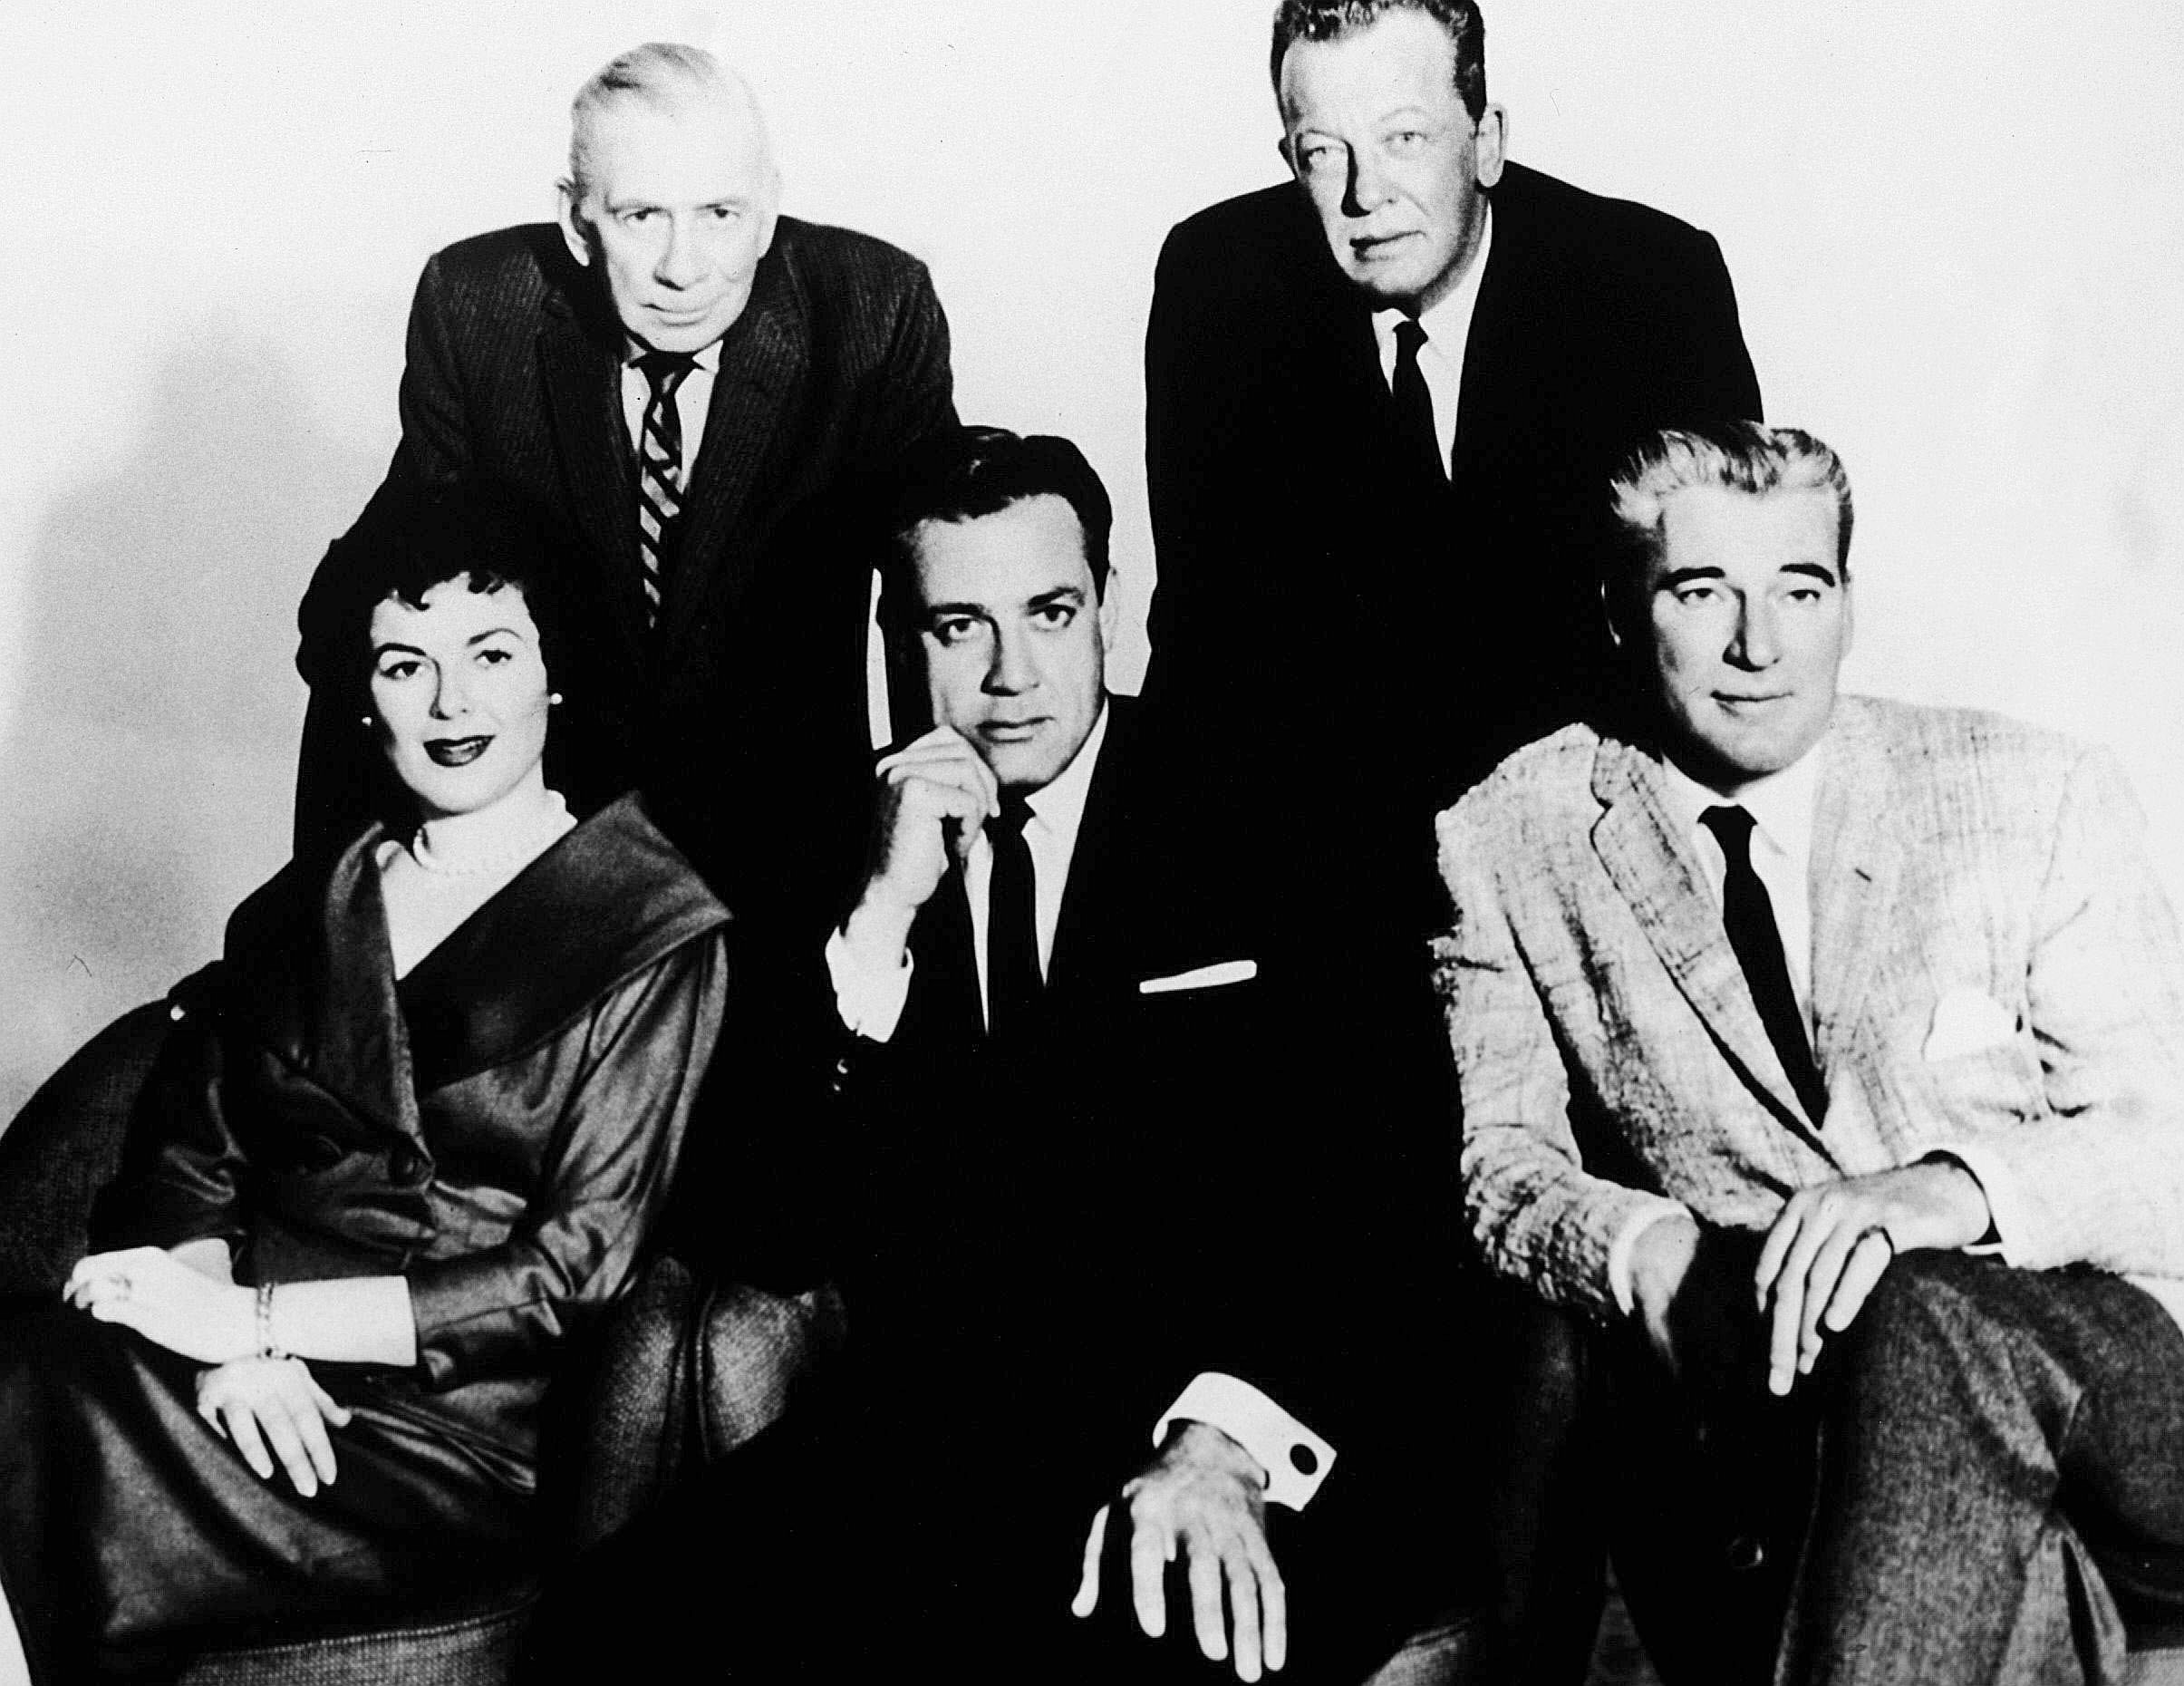 No Merchandising. Editorial Use Only. No Book Cover Usage. Mandatory Credit: Photo by CBS-TV/REX/Shutterstock (5883221c) Barbara Hale, Raymond Burr, William Talman Perry Mason - 1957-1966 CBS-TV USA